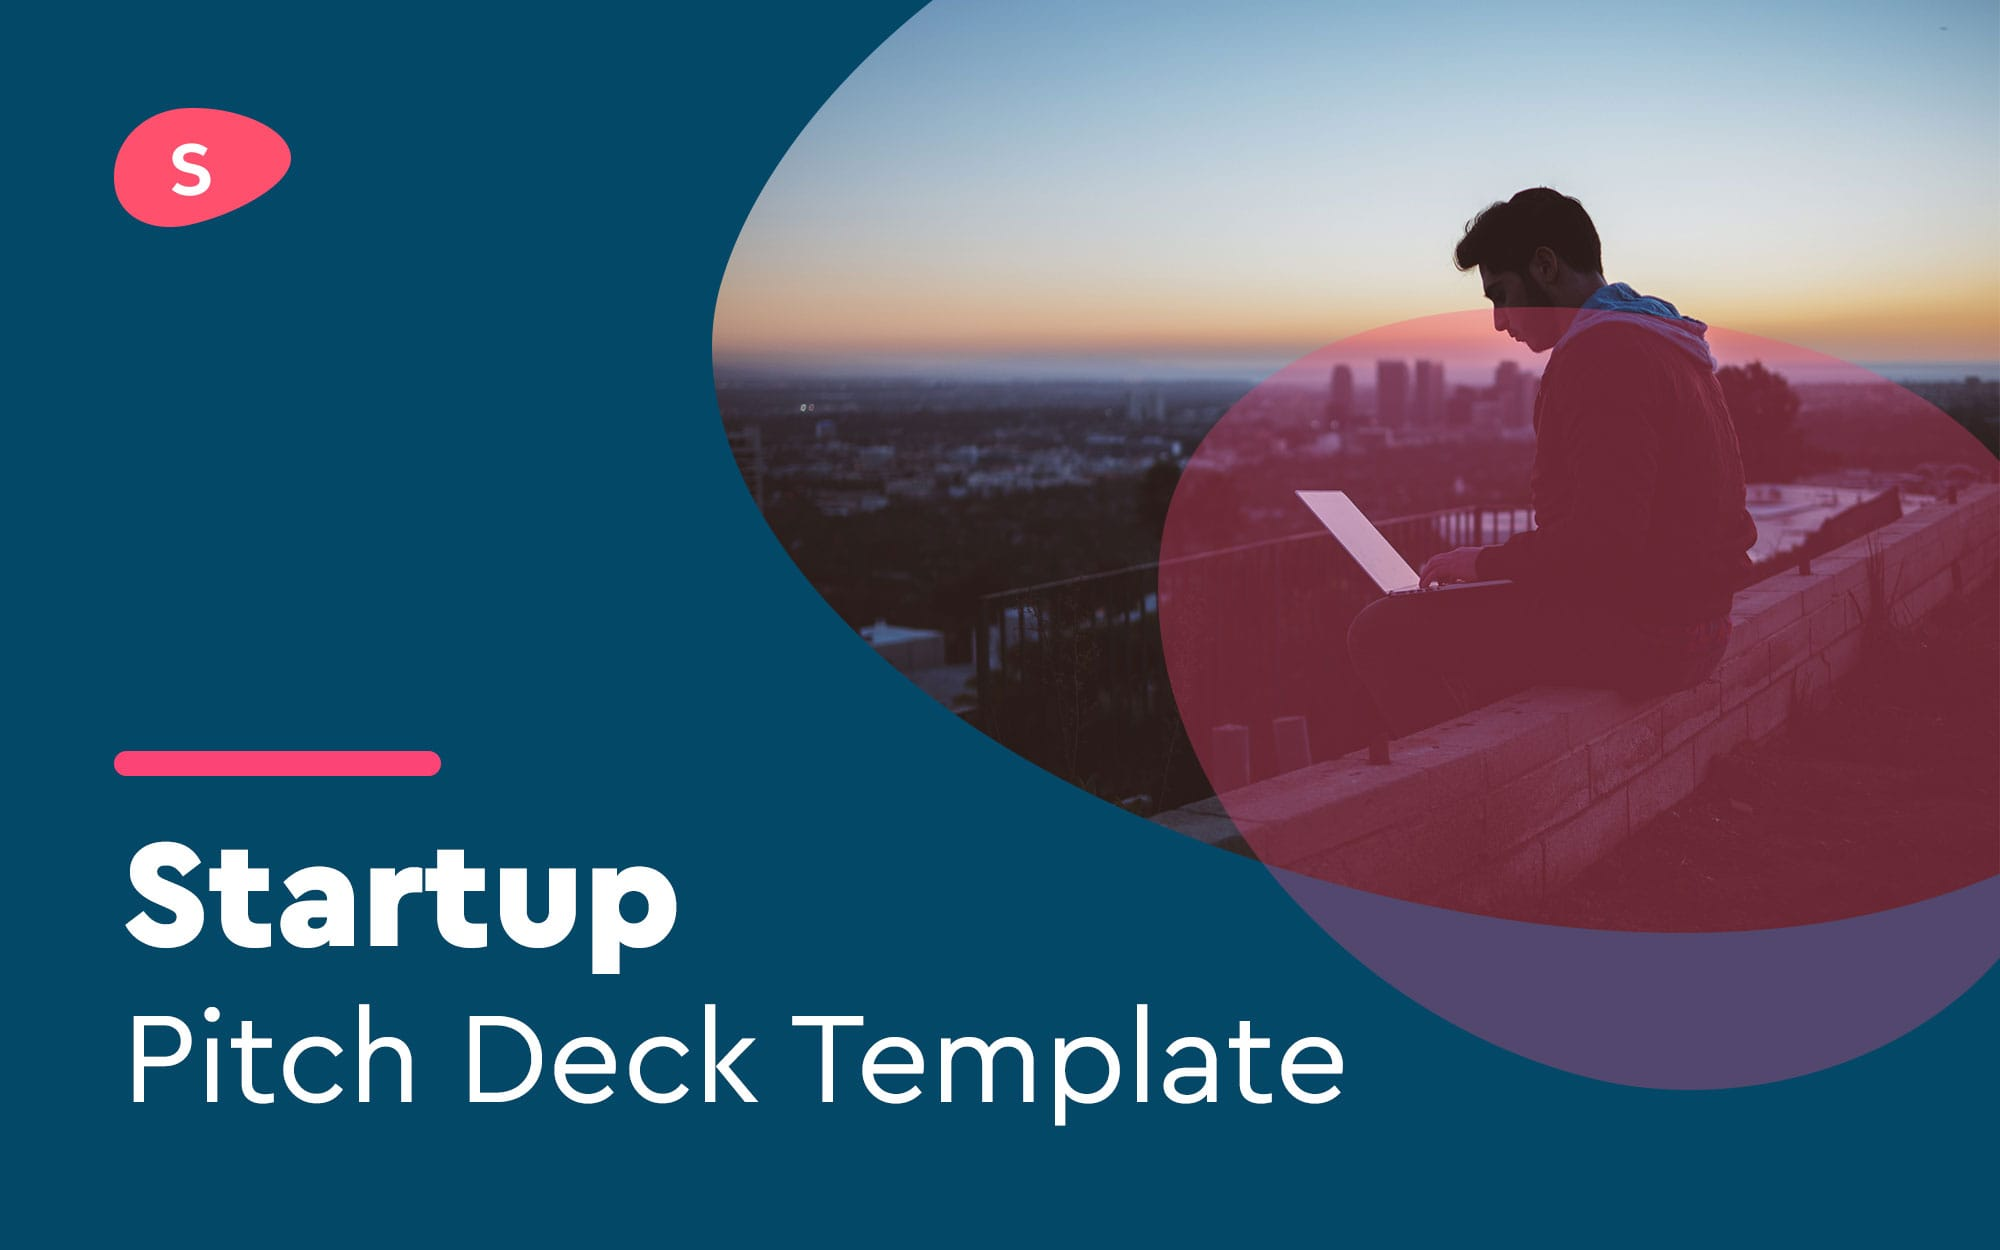 Startup pitch deck template cover